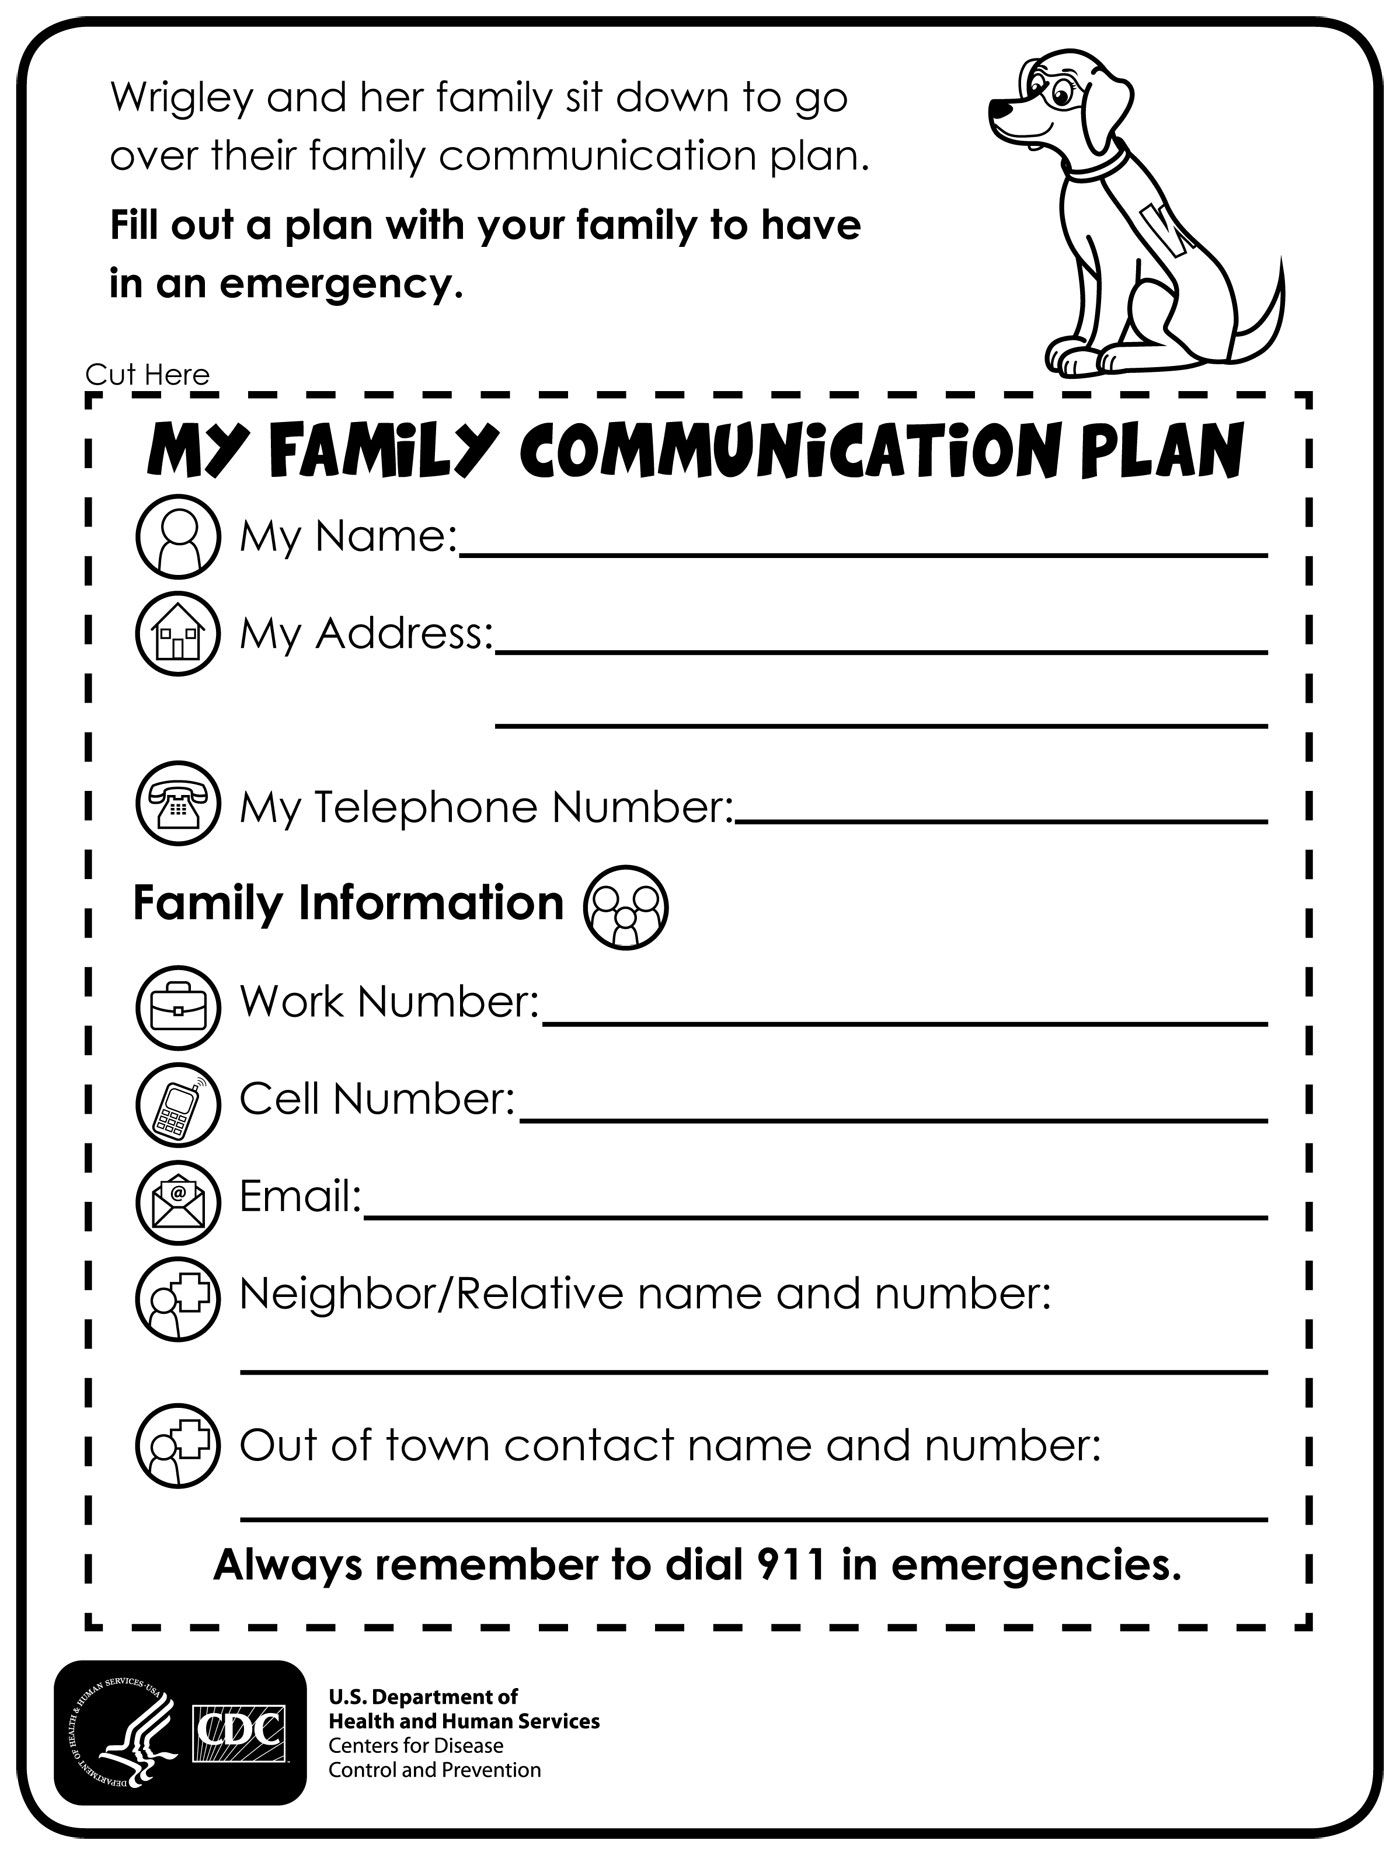 Fill out a plan with your family to have in an emergency then sit emergency preparedness fandeluxe